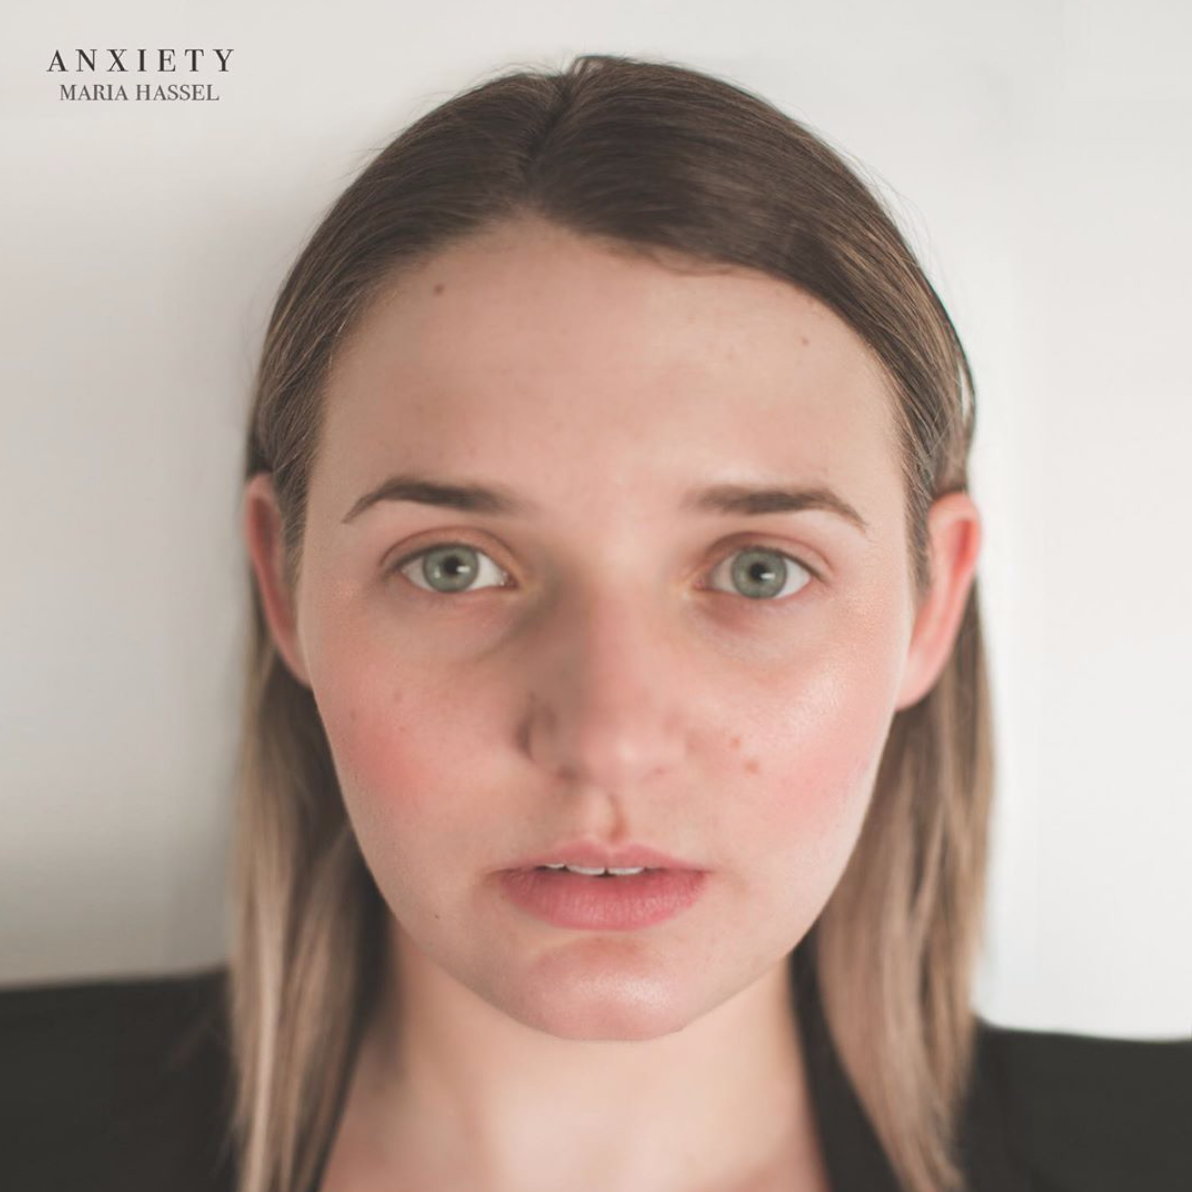 anxiety-artwork.png